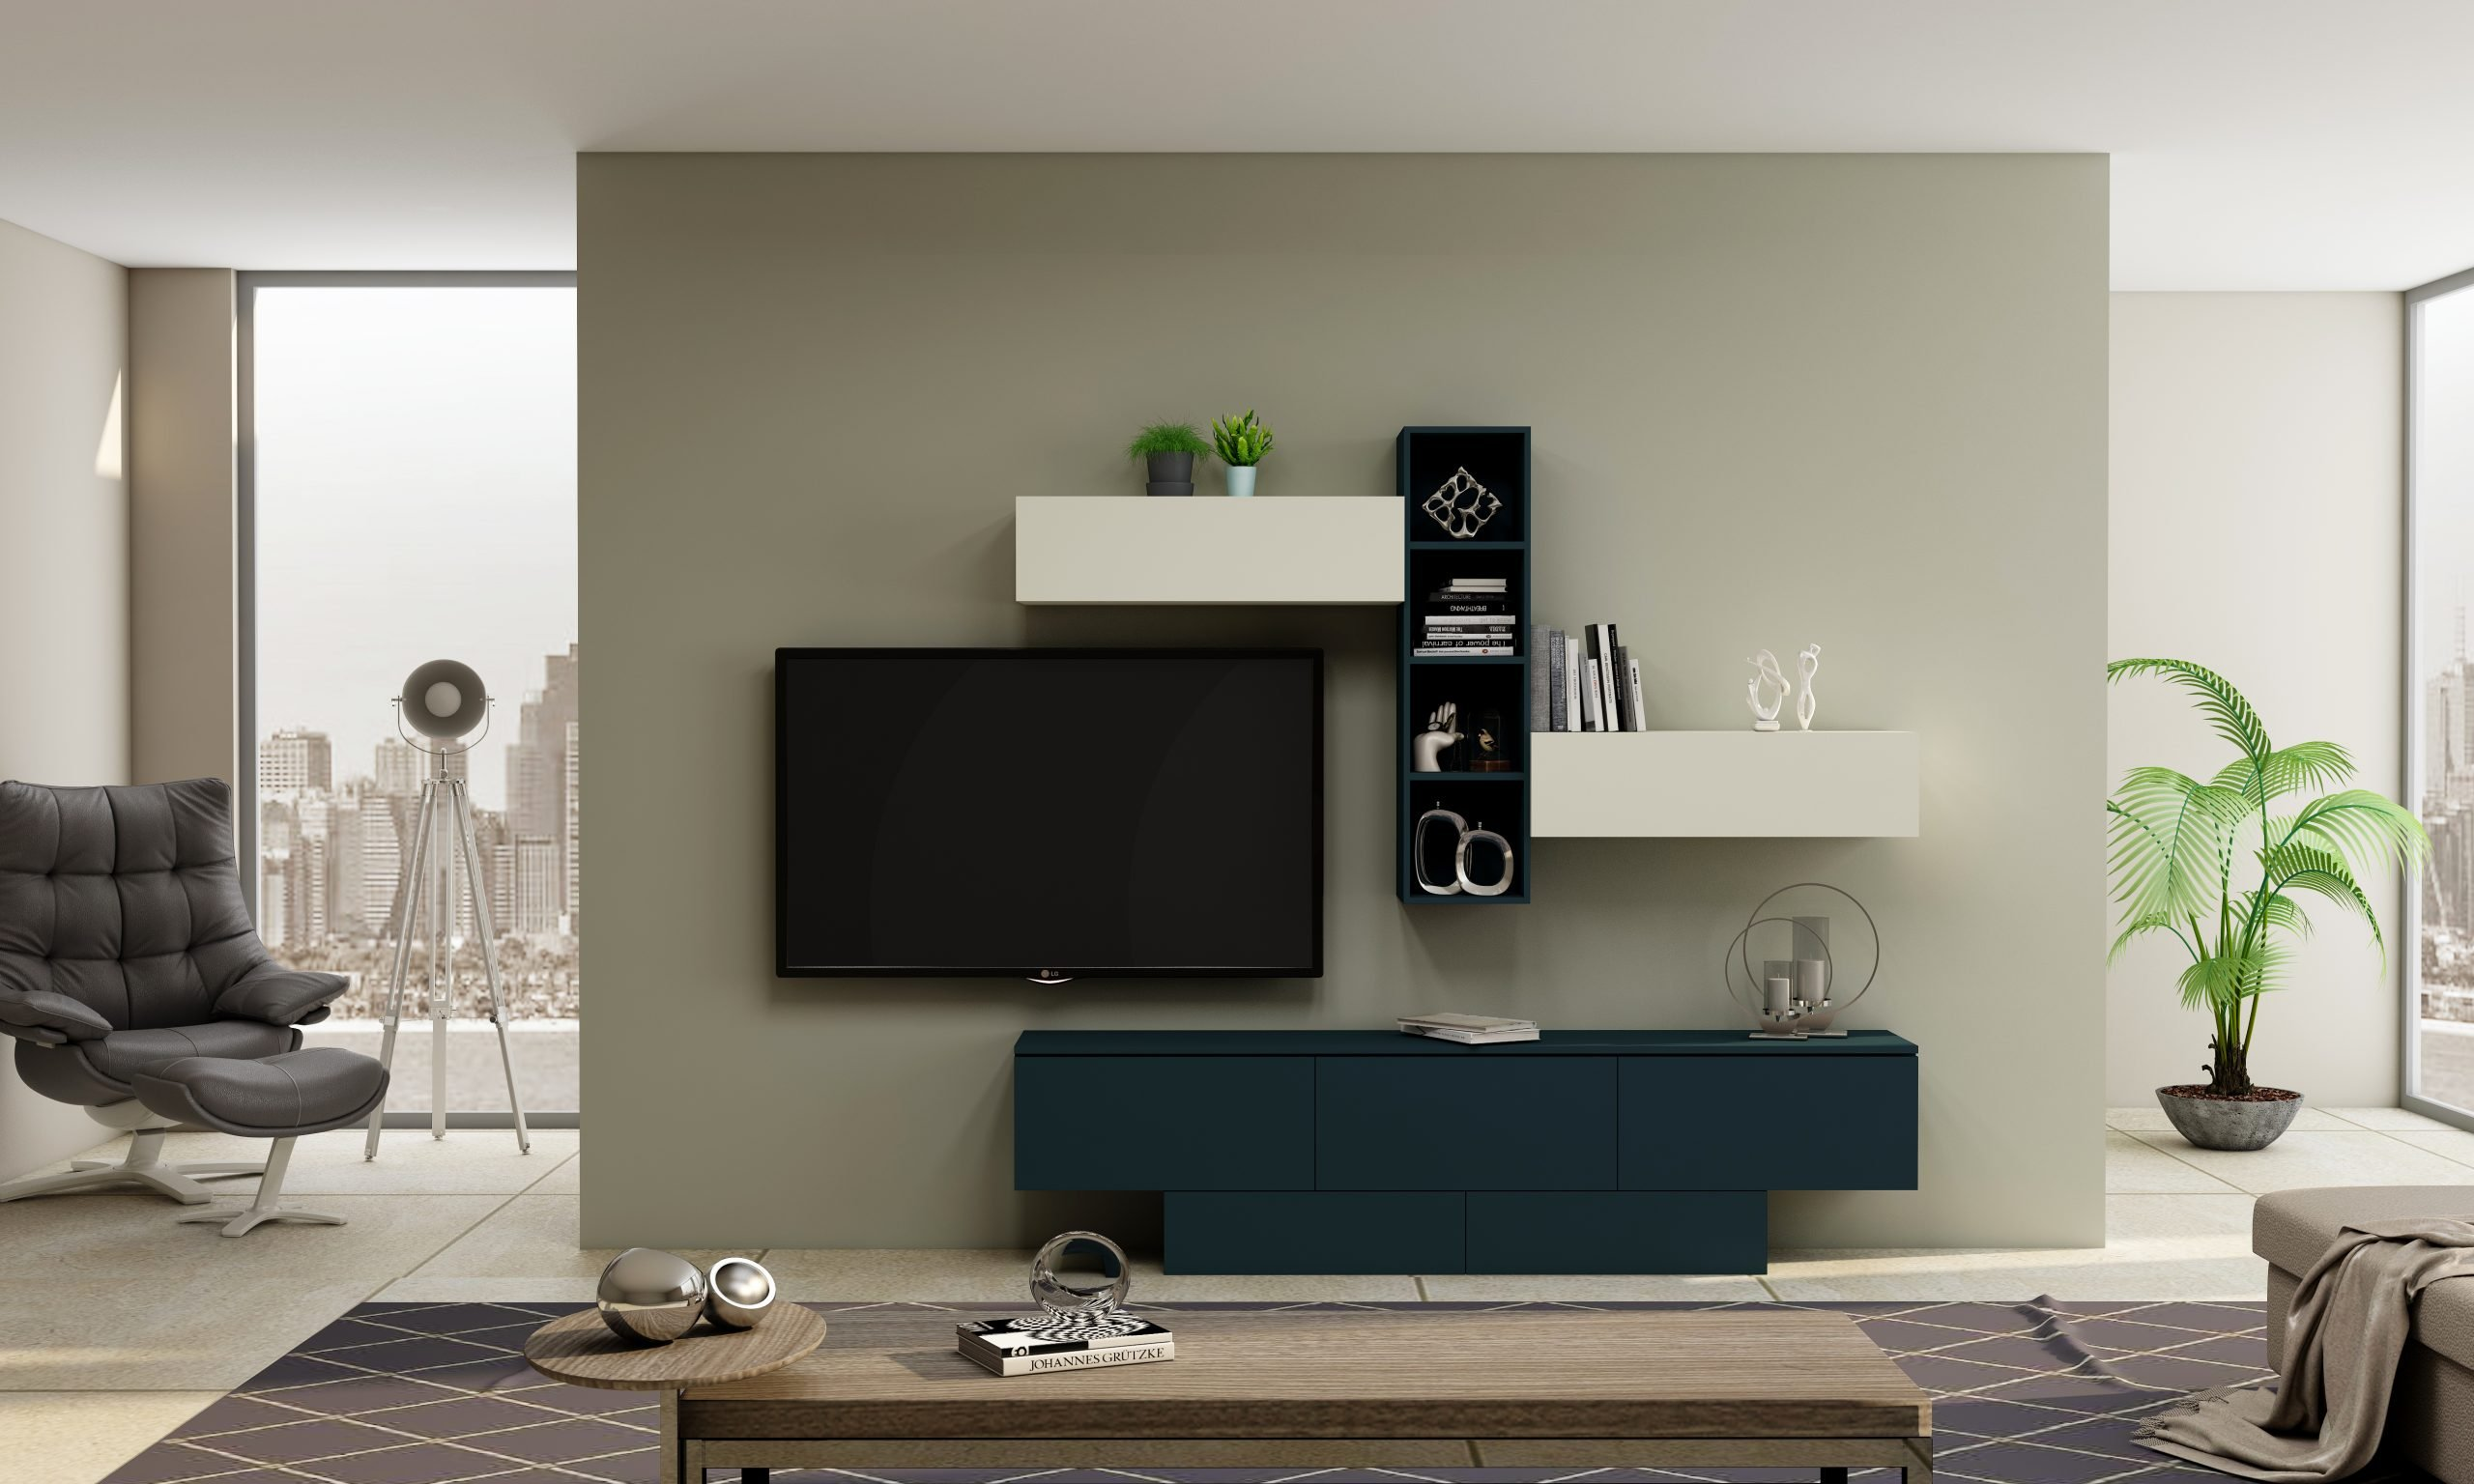 Gloss TV unit with Storage in Flap ups, Drawers and Open shelf units in Combination of White and Smoke Blue